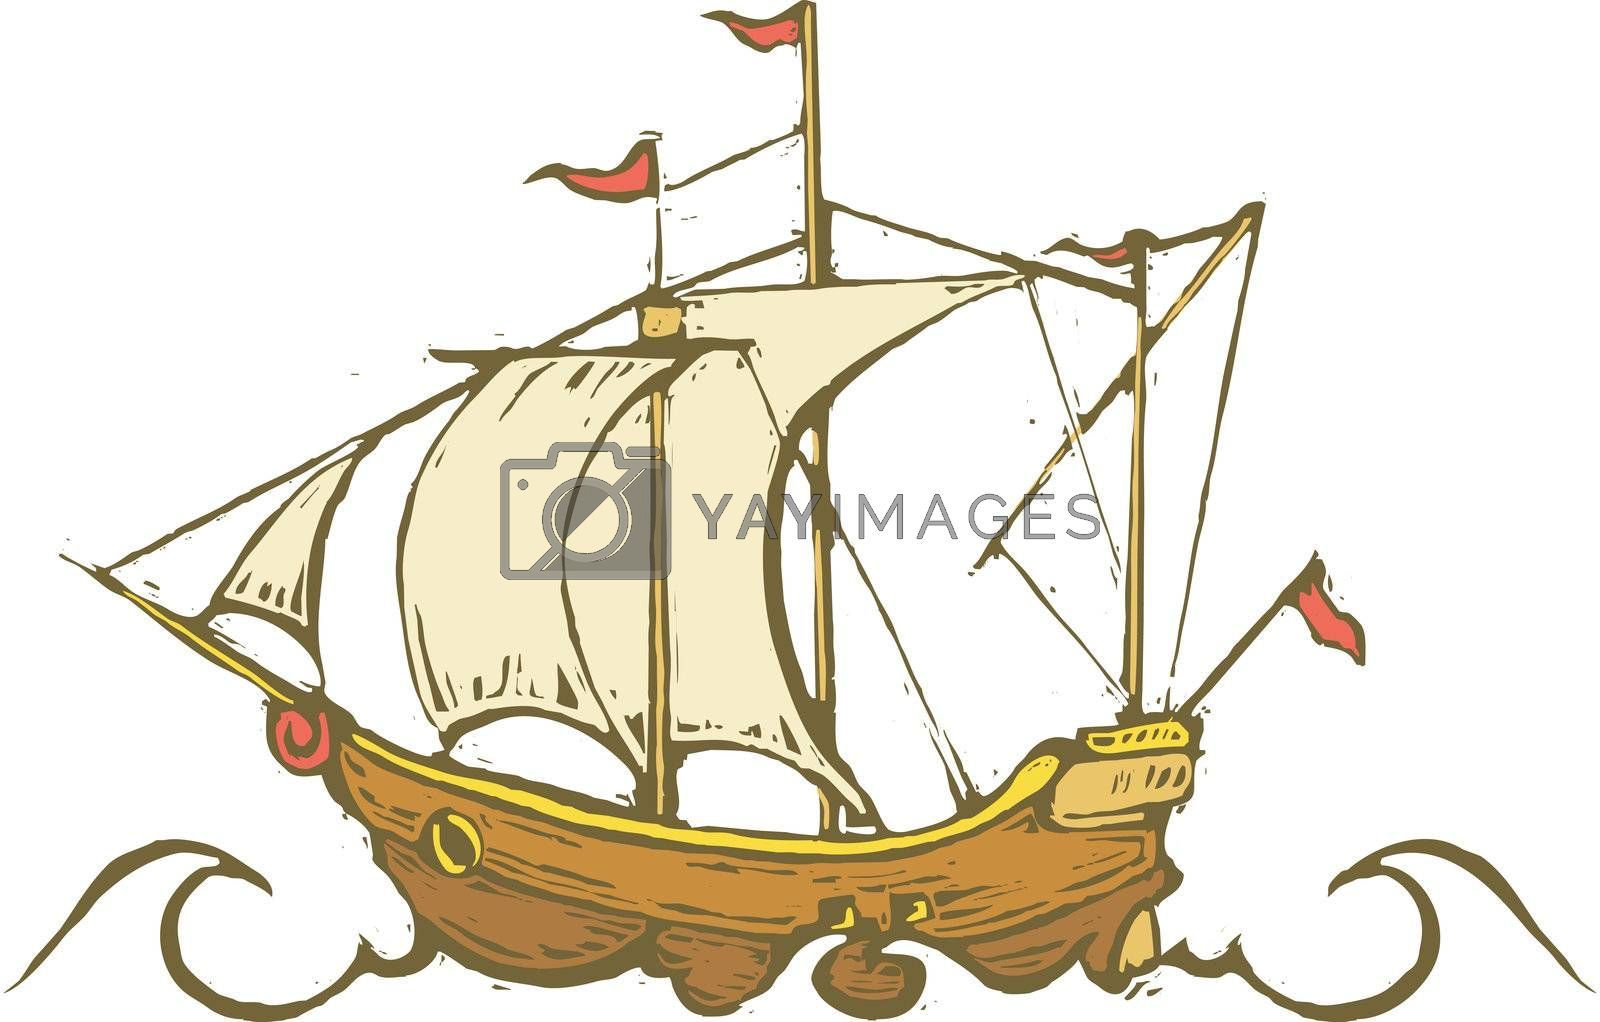 Sailing ship or Pirate ship on the high seas.